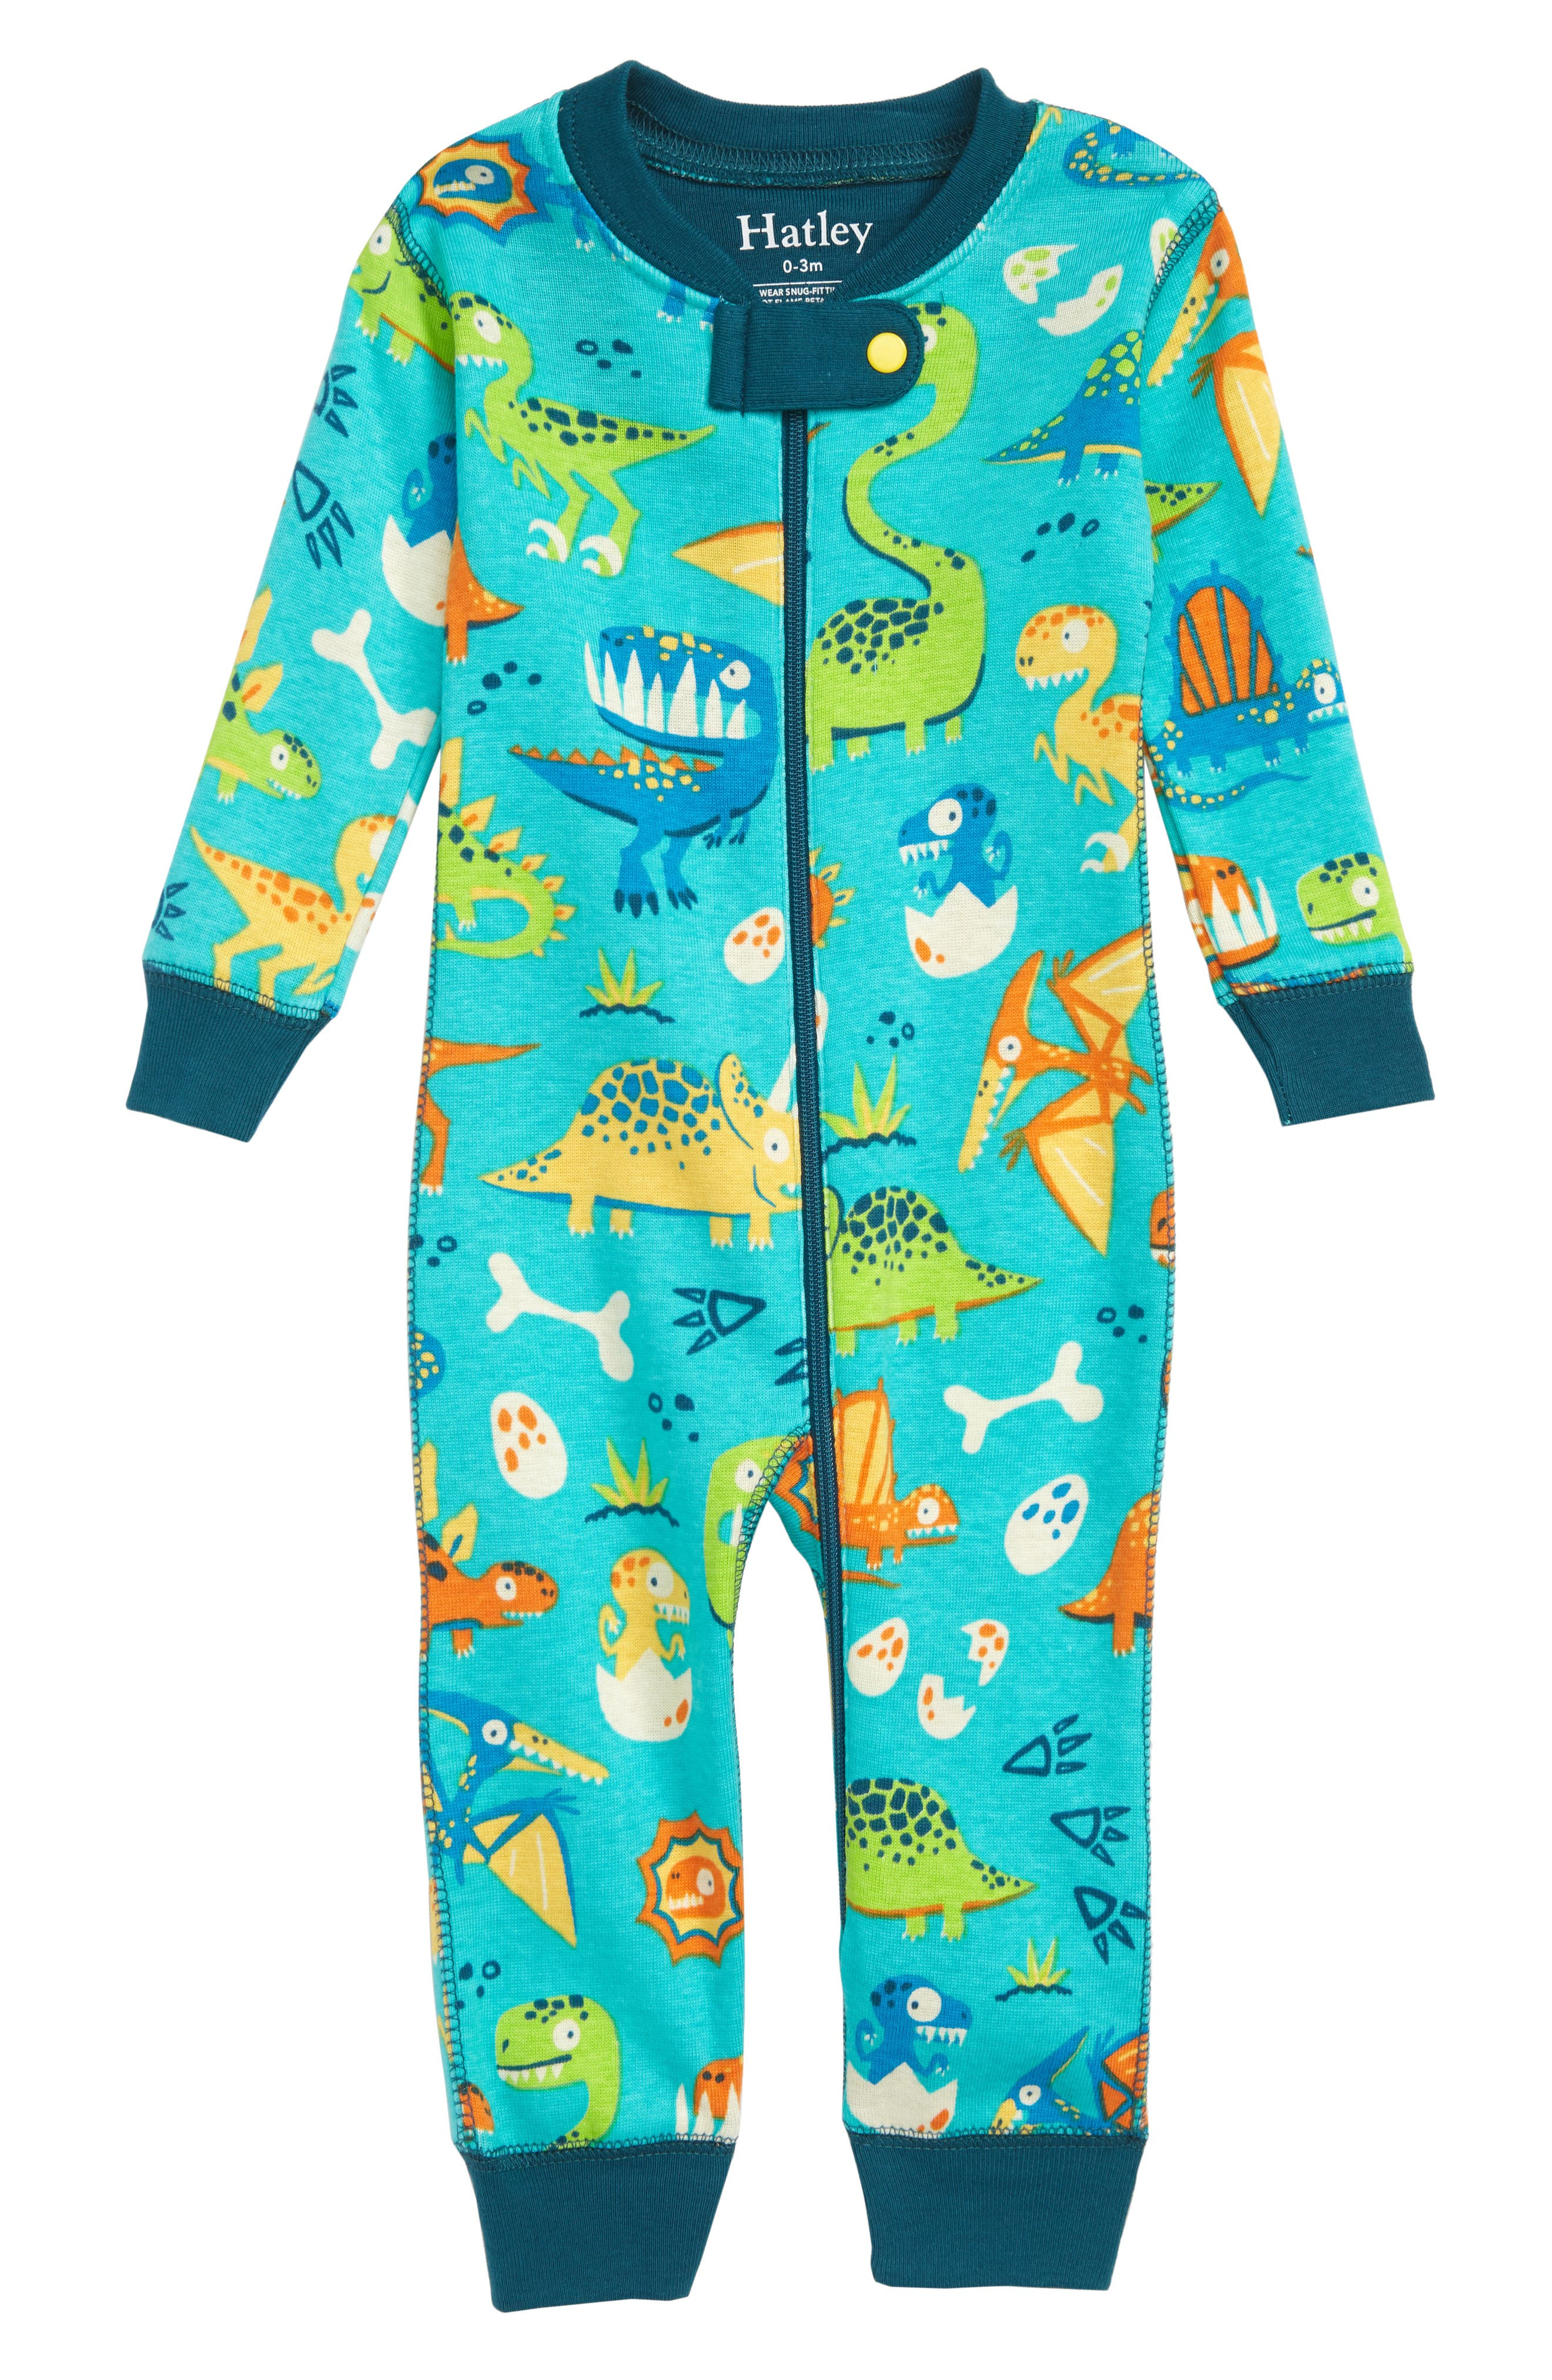 Haltey Organic Cotton Fitted One-Piece Pajamas (Baby Boys)